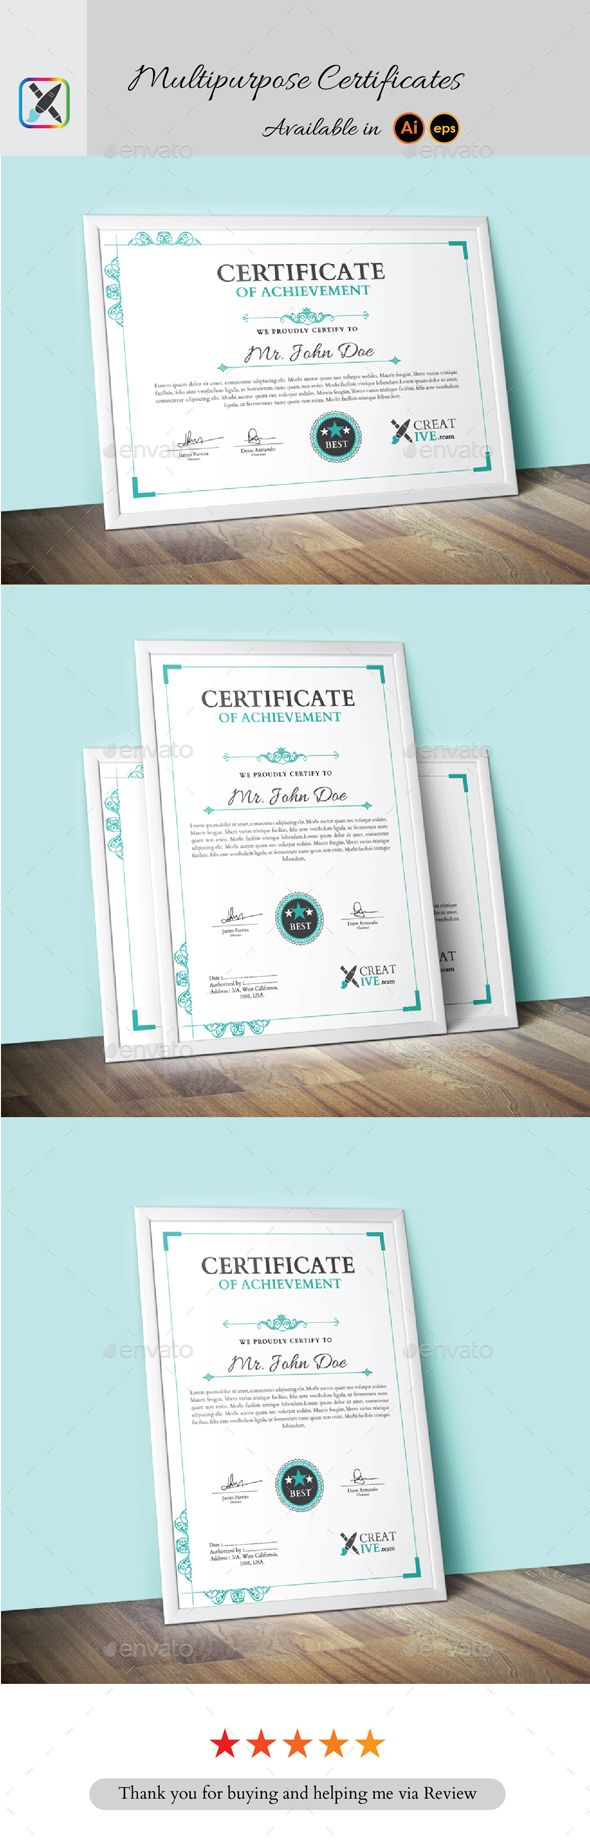 Multipurpose Certificate Template Vector EPS, AI Illustrator. Download here: https://graphicriver.net/item/multipurpose-certificate/16862193?ref=ksioks